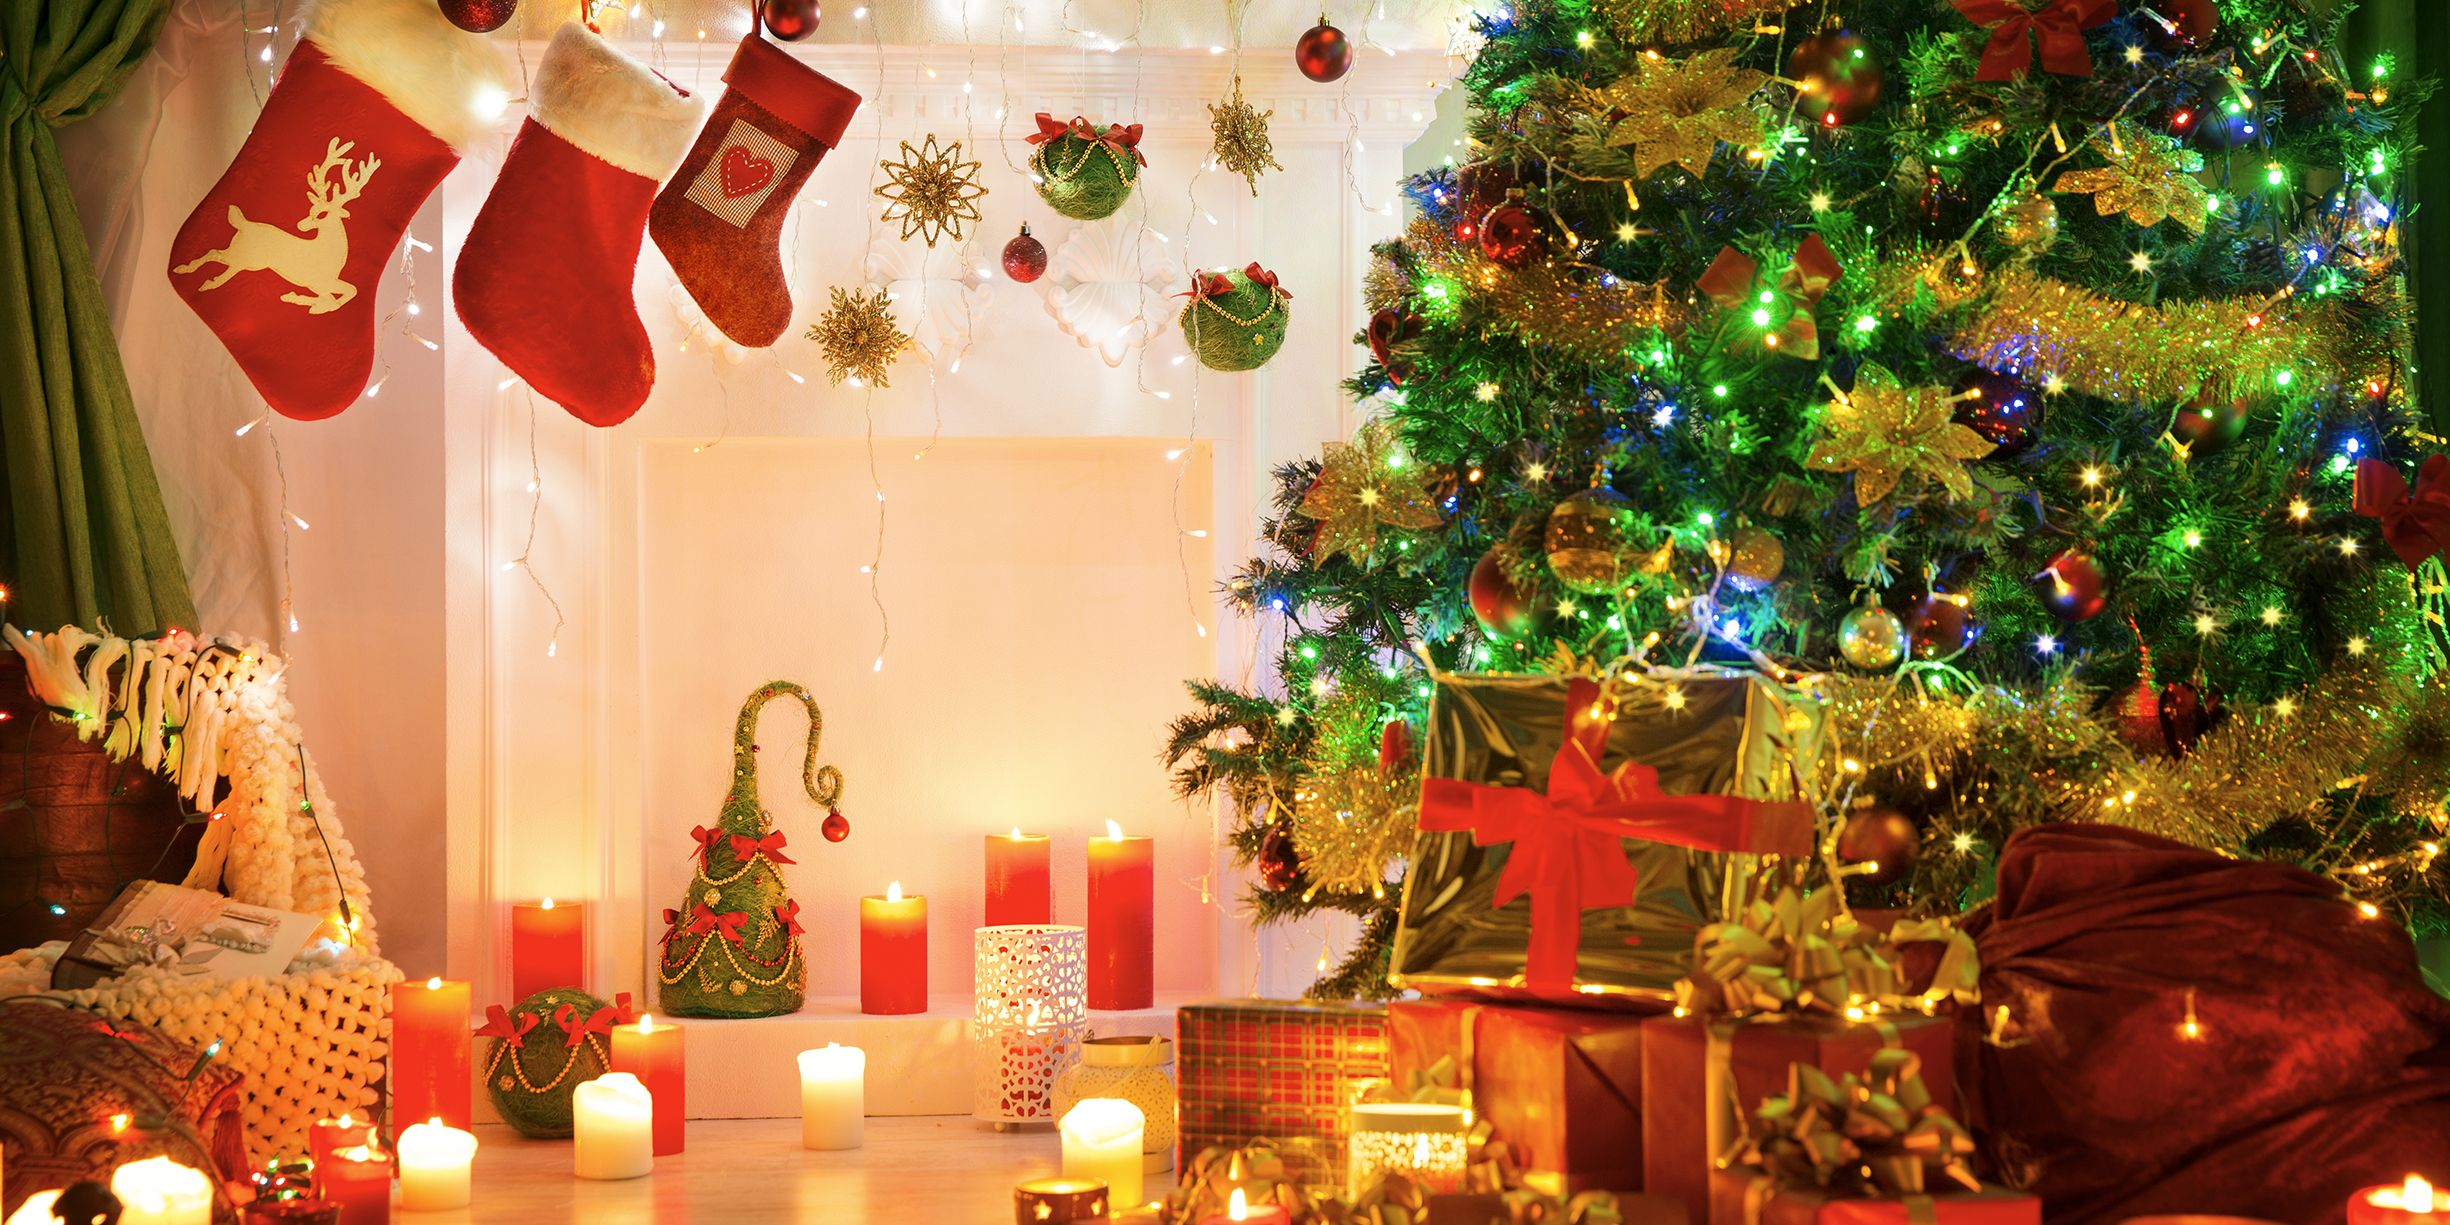 Christmas Trivia Questions.15 Christmas Trivia Questions Holiday Fun Facts And Questions